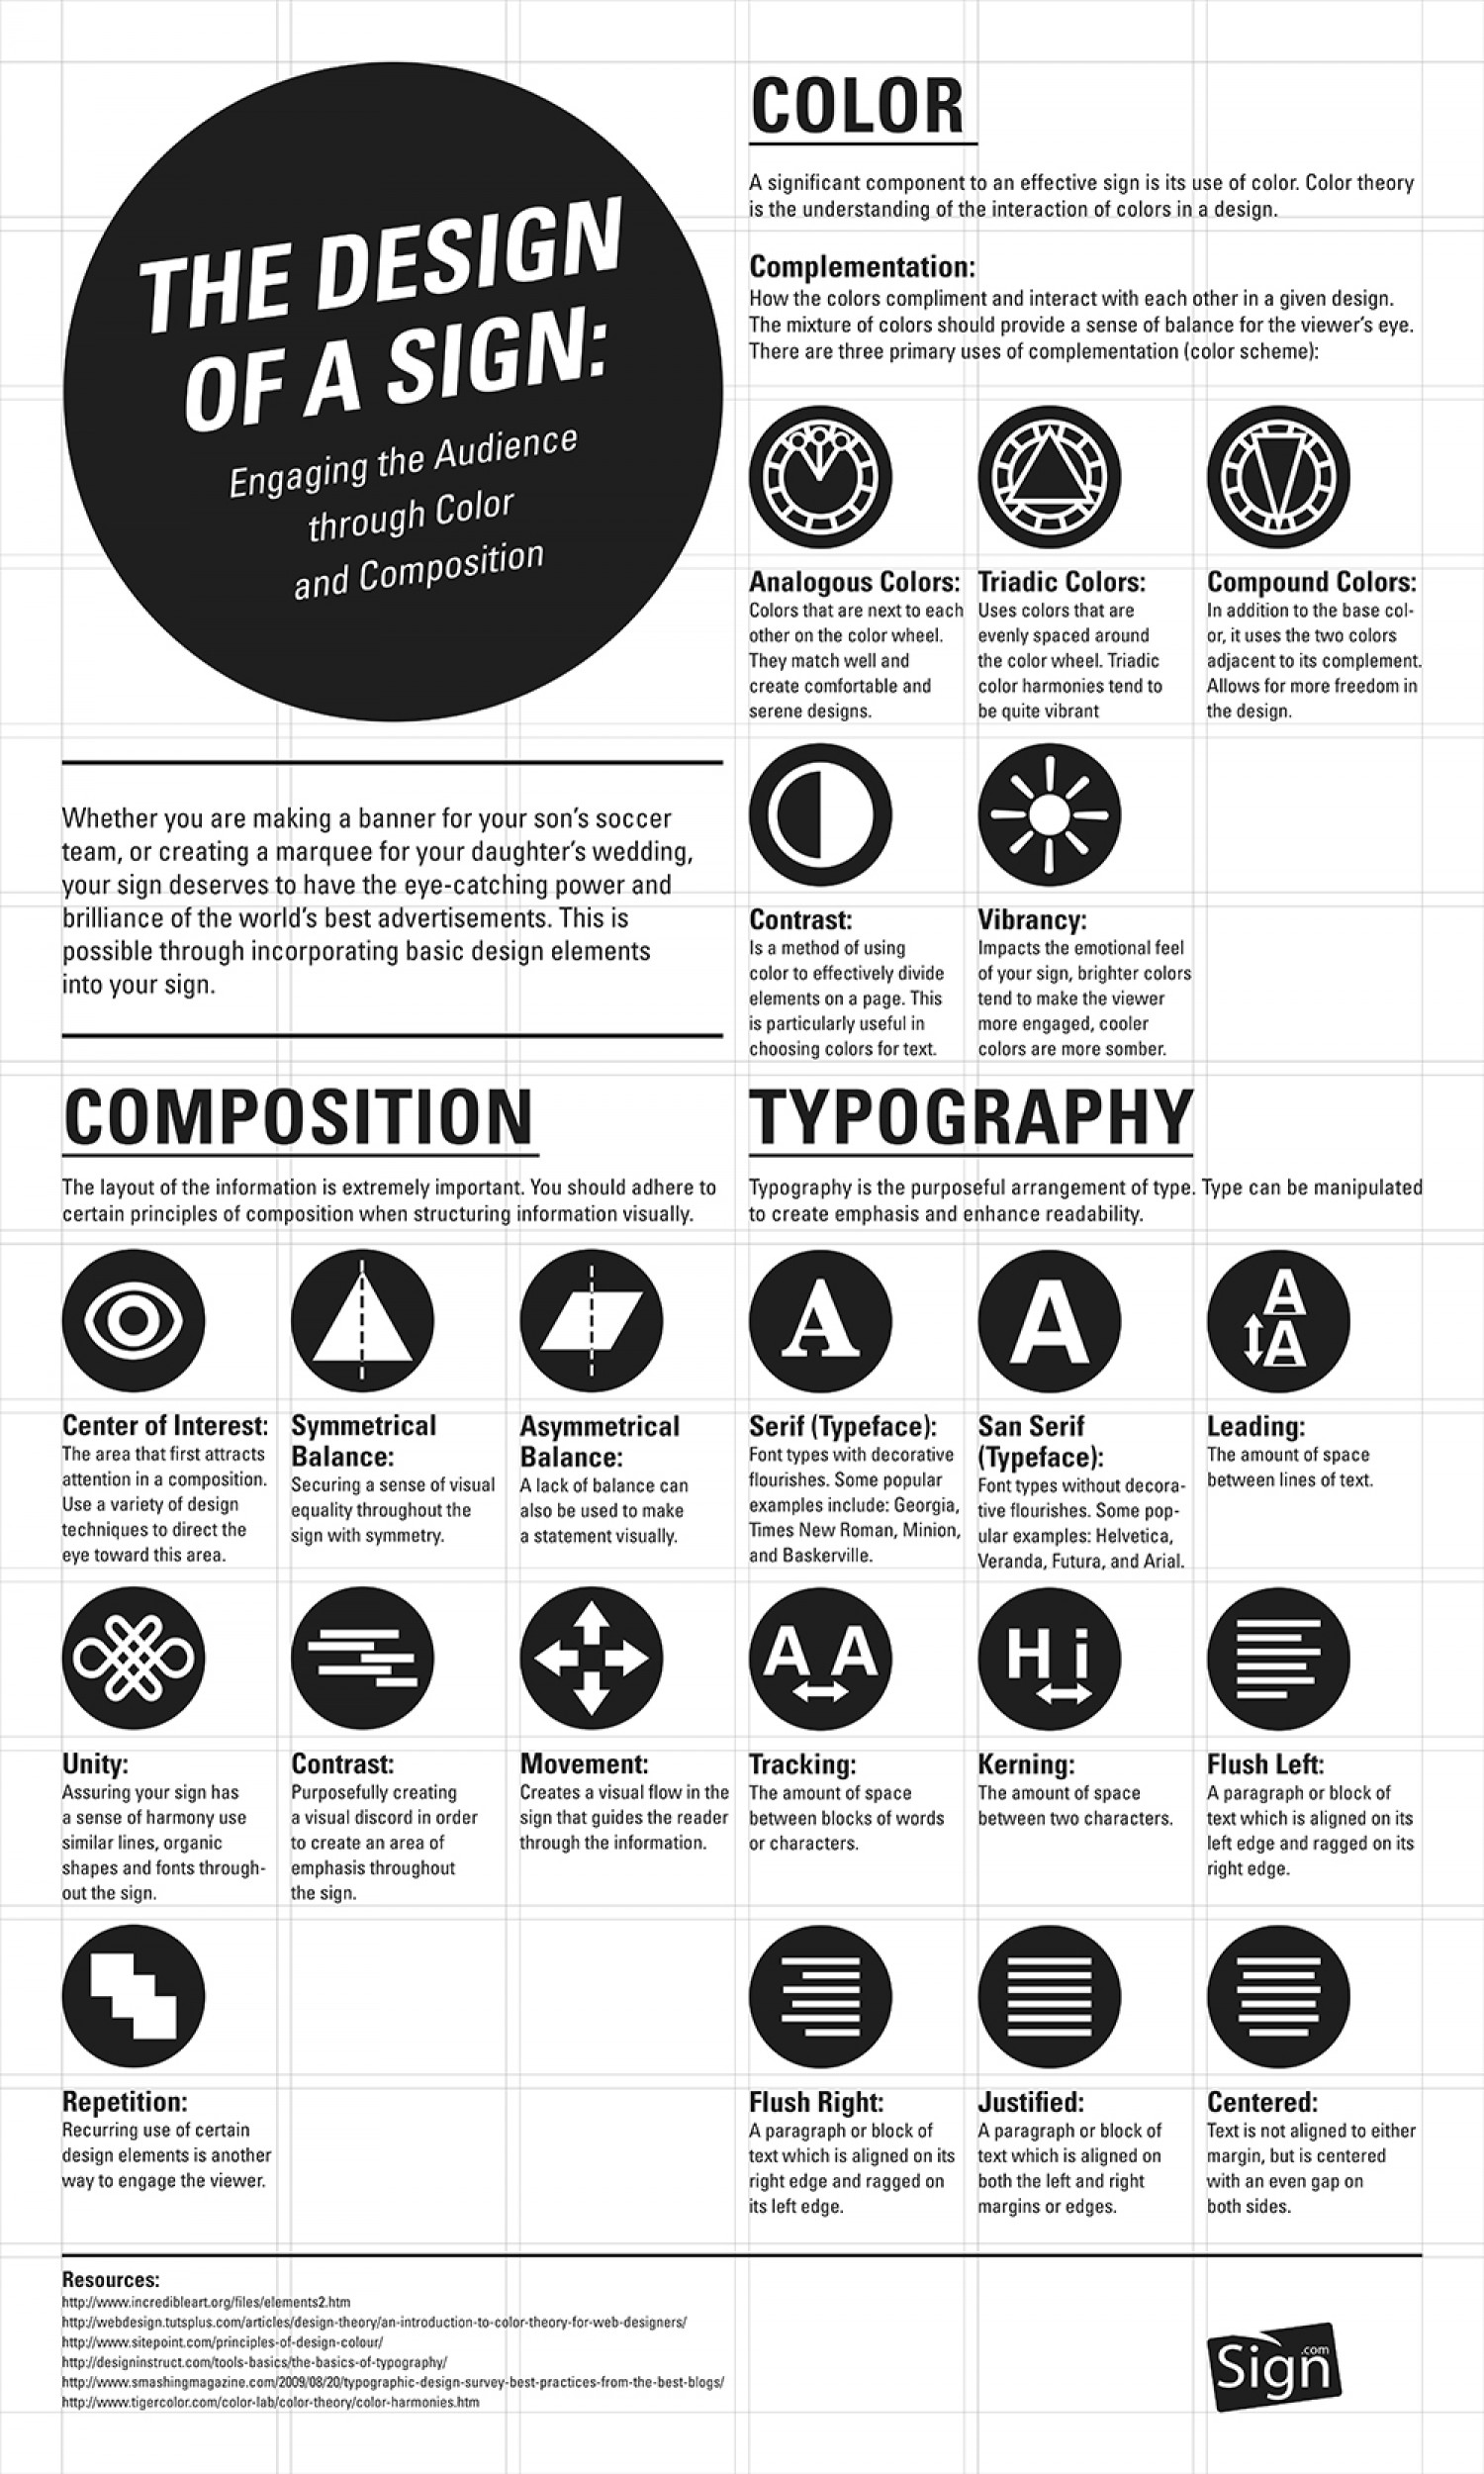 The Design of a Sign Infographic